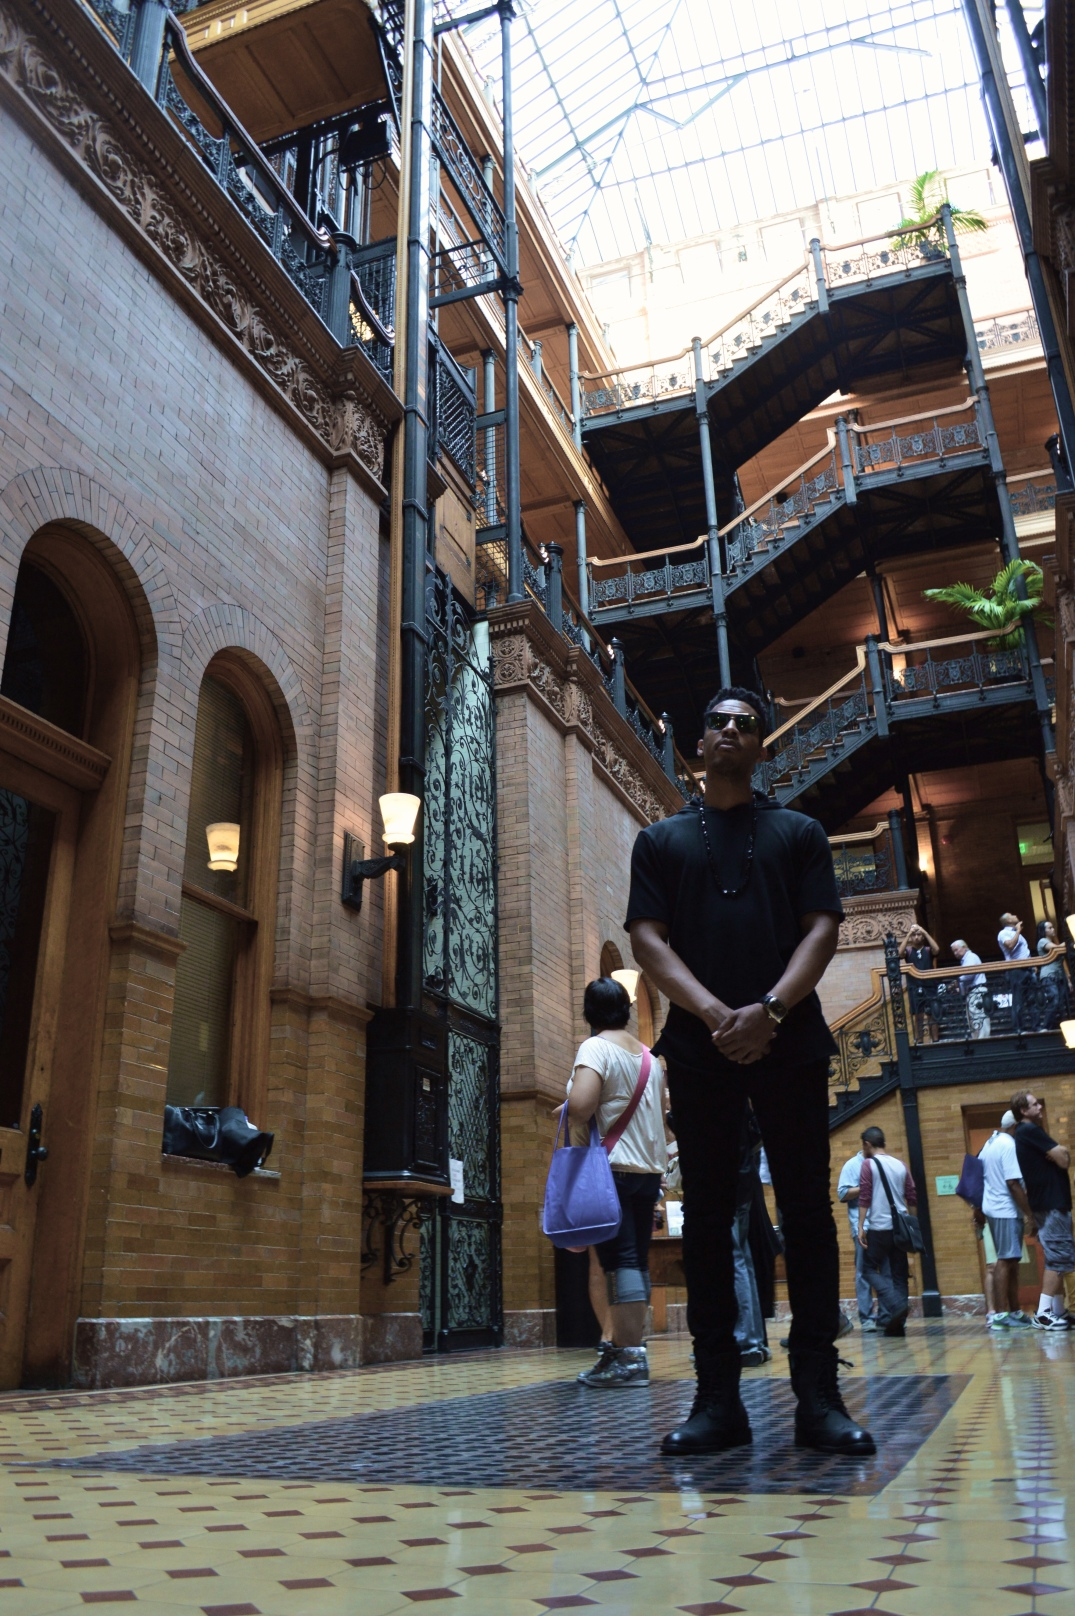 A stop on most walking tours of Downtown Los Angeles, the historic Bradbury Building is a stunning example of late 1800 american architecture.